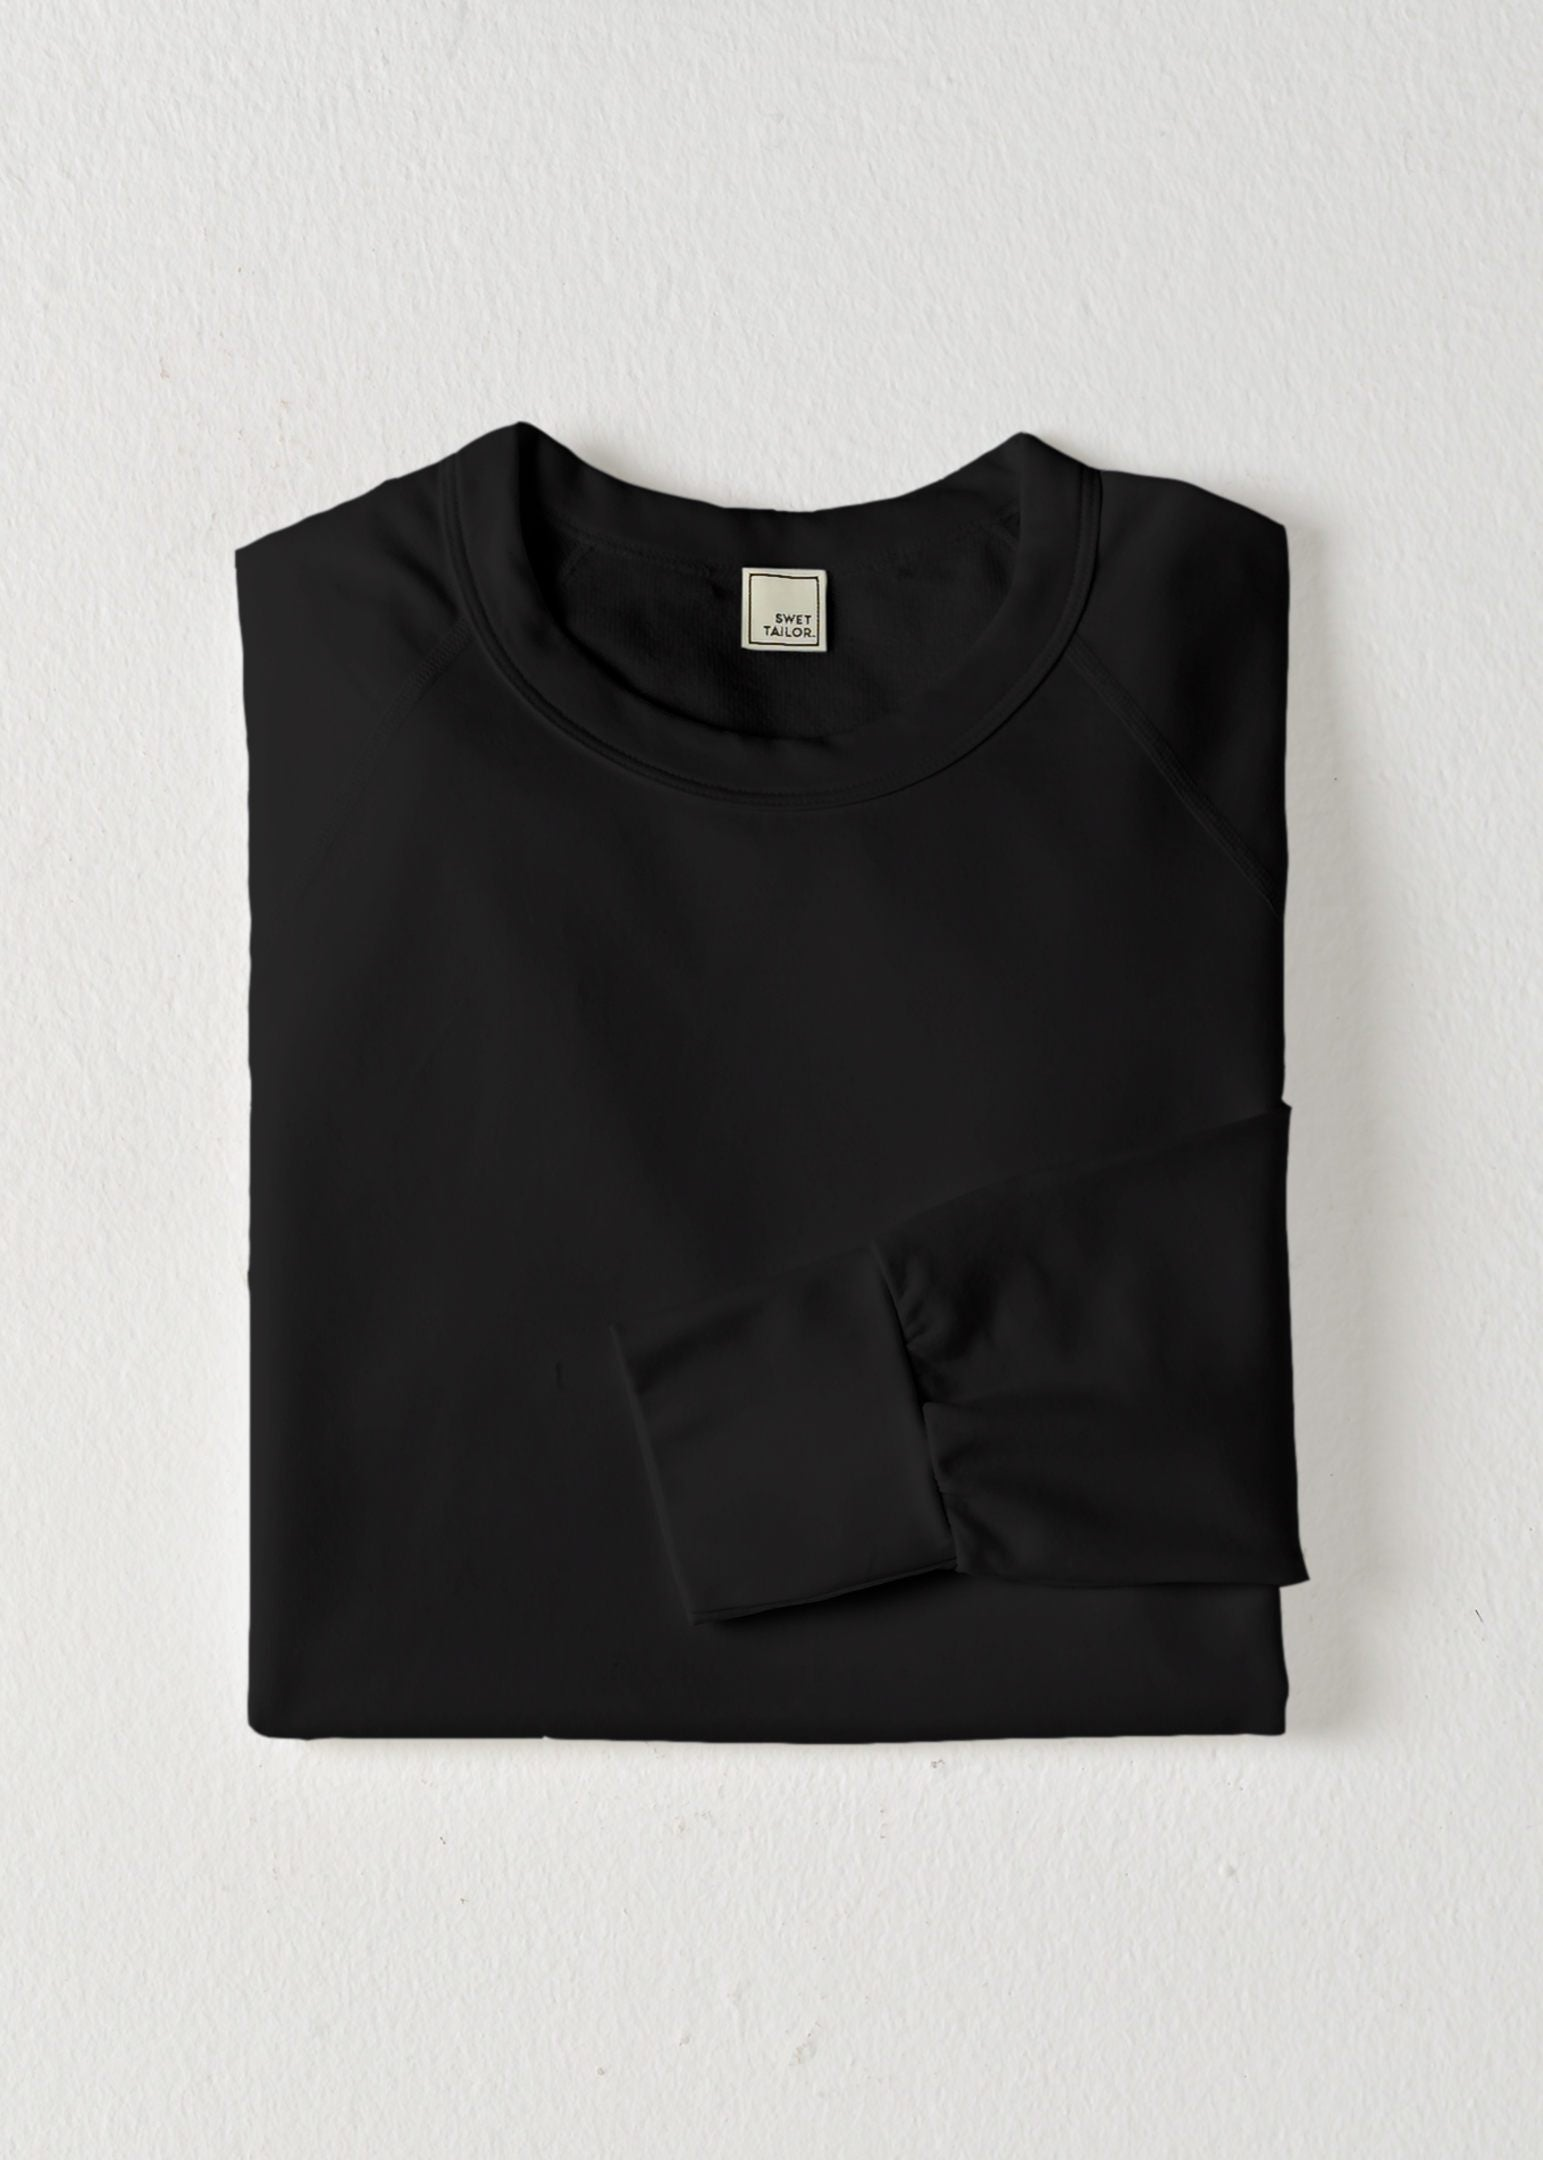 SWET-Shirt | Black